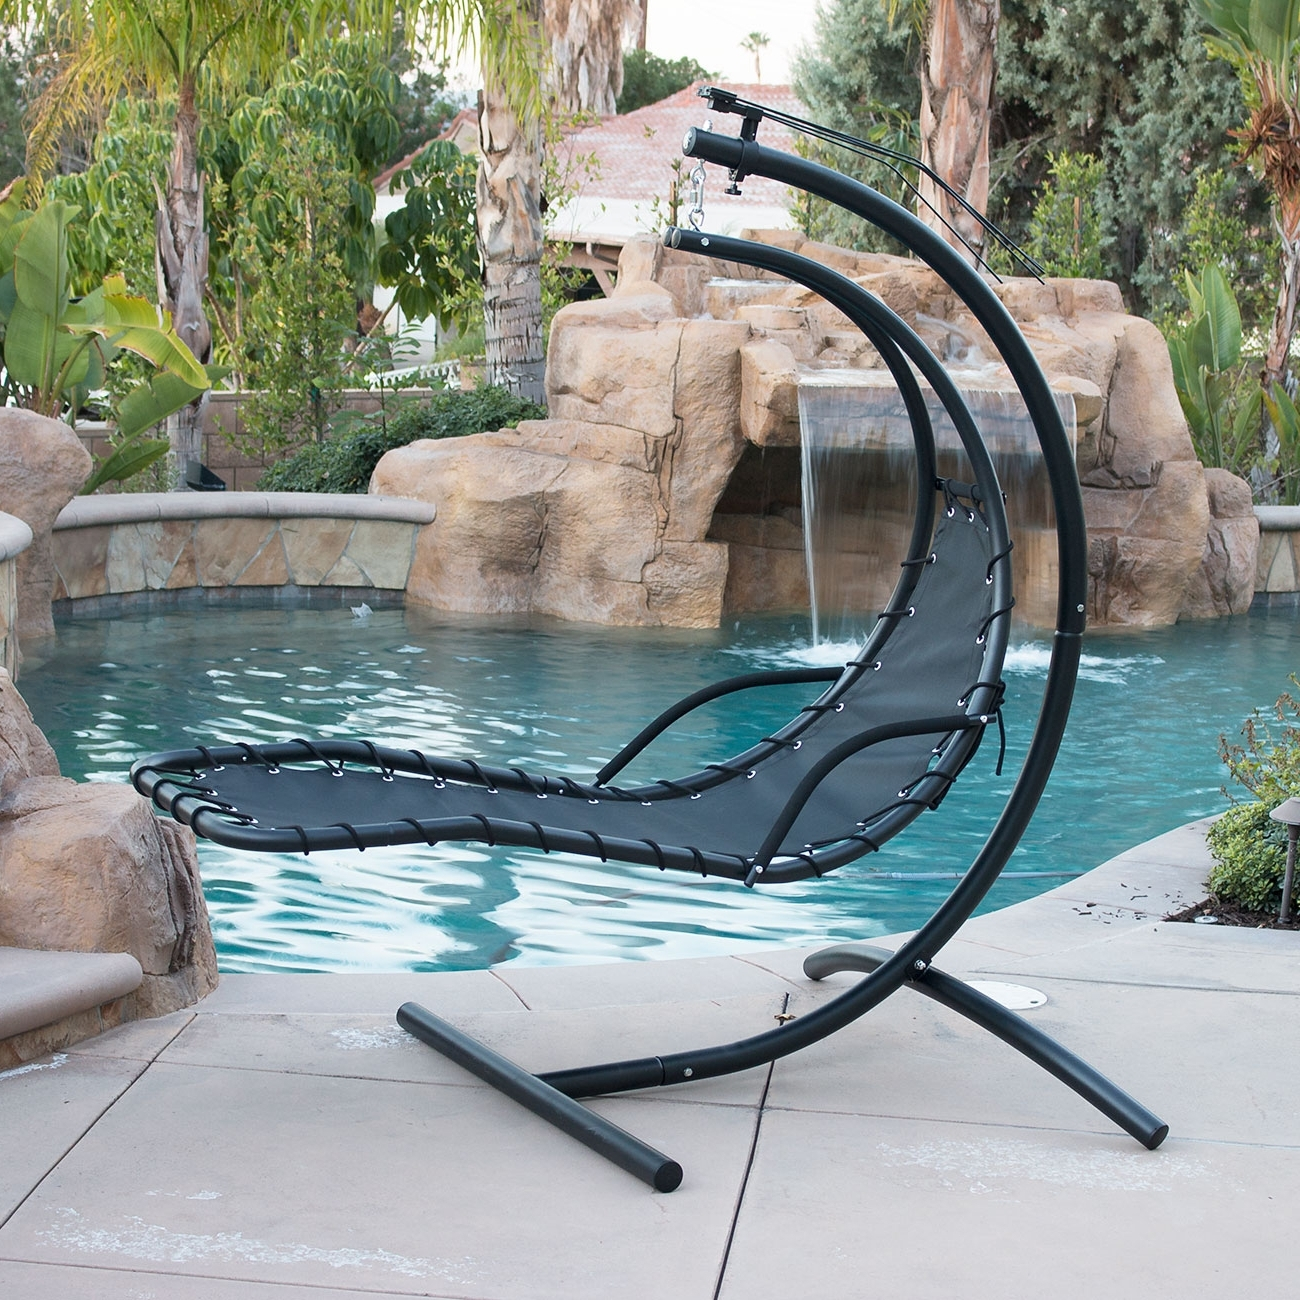 Hanging Chaise Lounge Chairs Pertaining To 2018 Hanging Chaise Lounge Chair • Lounge Chairs Ideas (View 6 of 15)